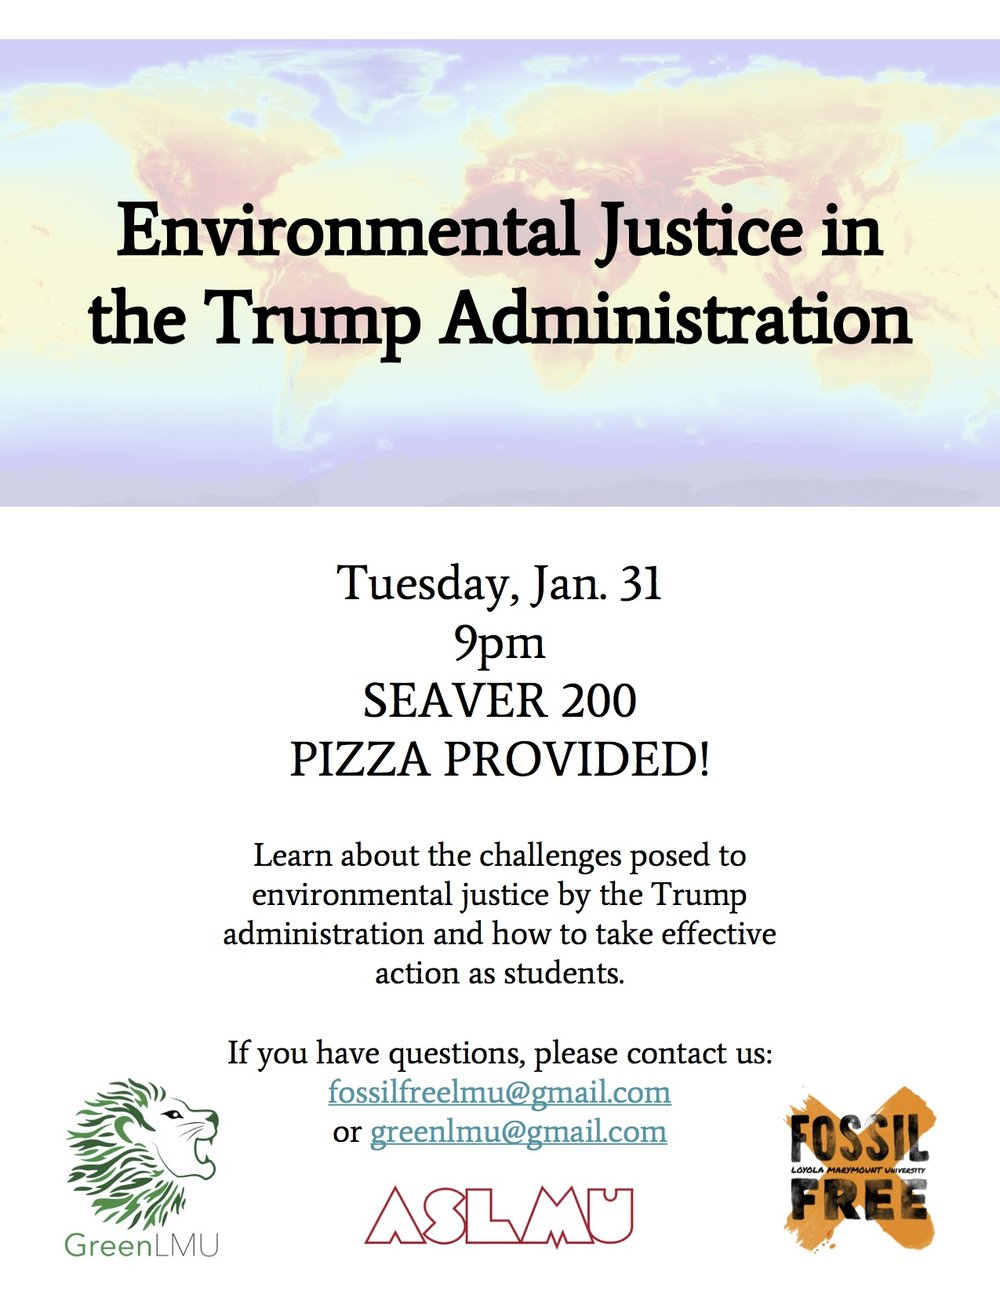 Hey Lions, this is a great opportunity to be educated on the Environmental Justice in the Trump Administration. Located in Seaver 200, join Green LMU for information on how to take action as students. There will be pizza provided!! Hope to see you there!